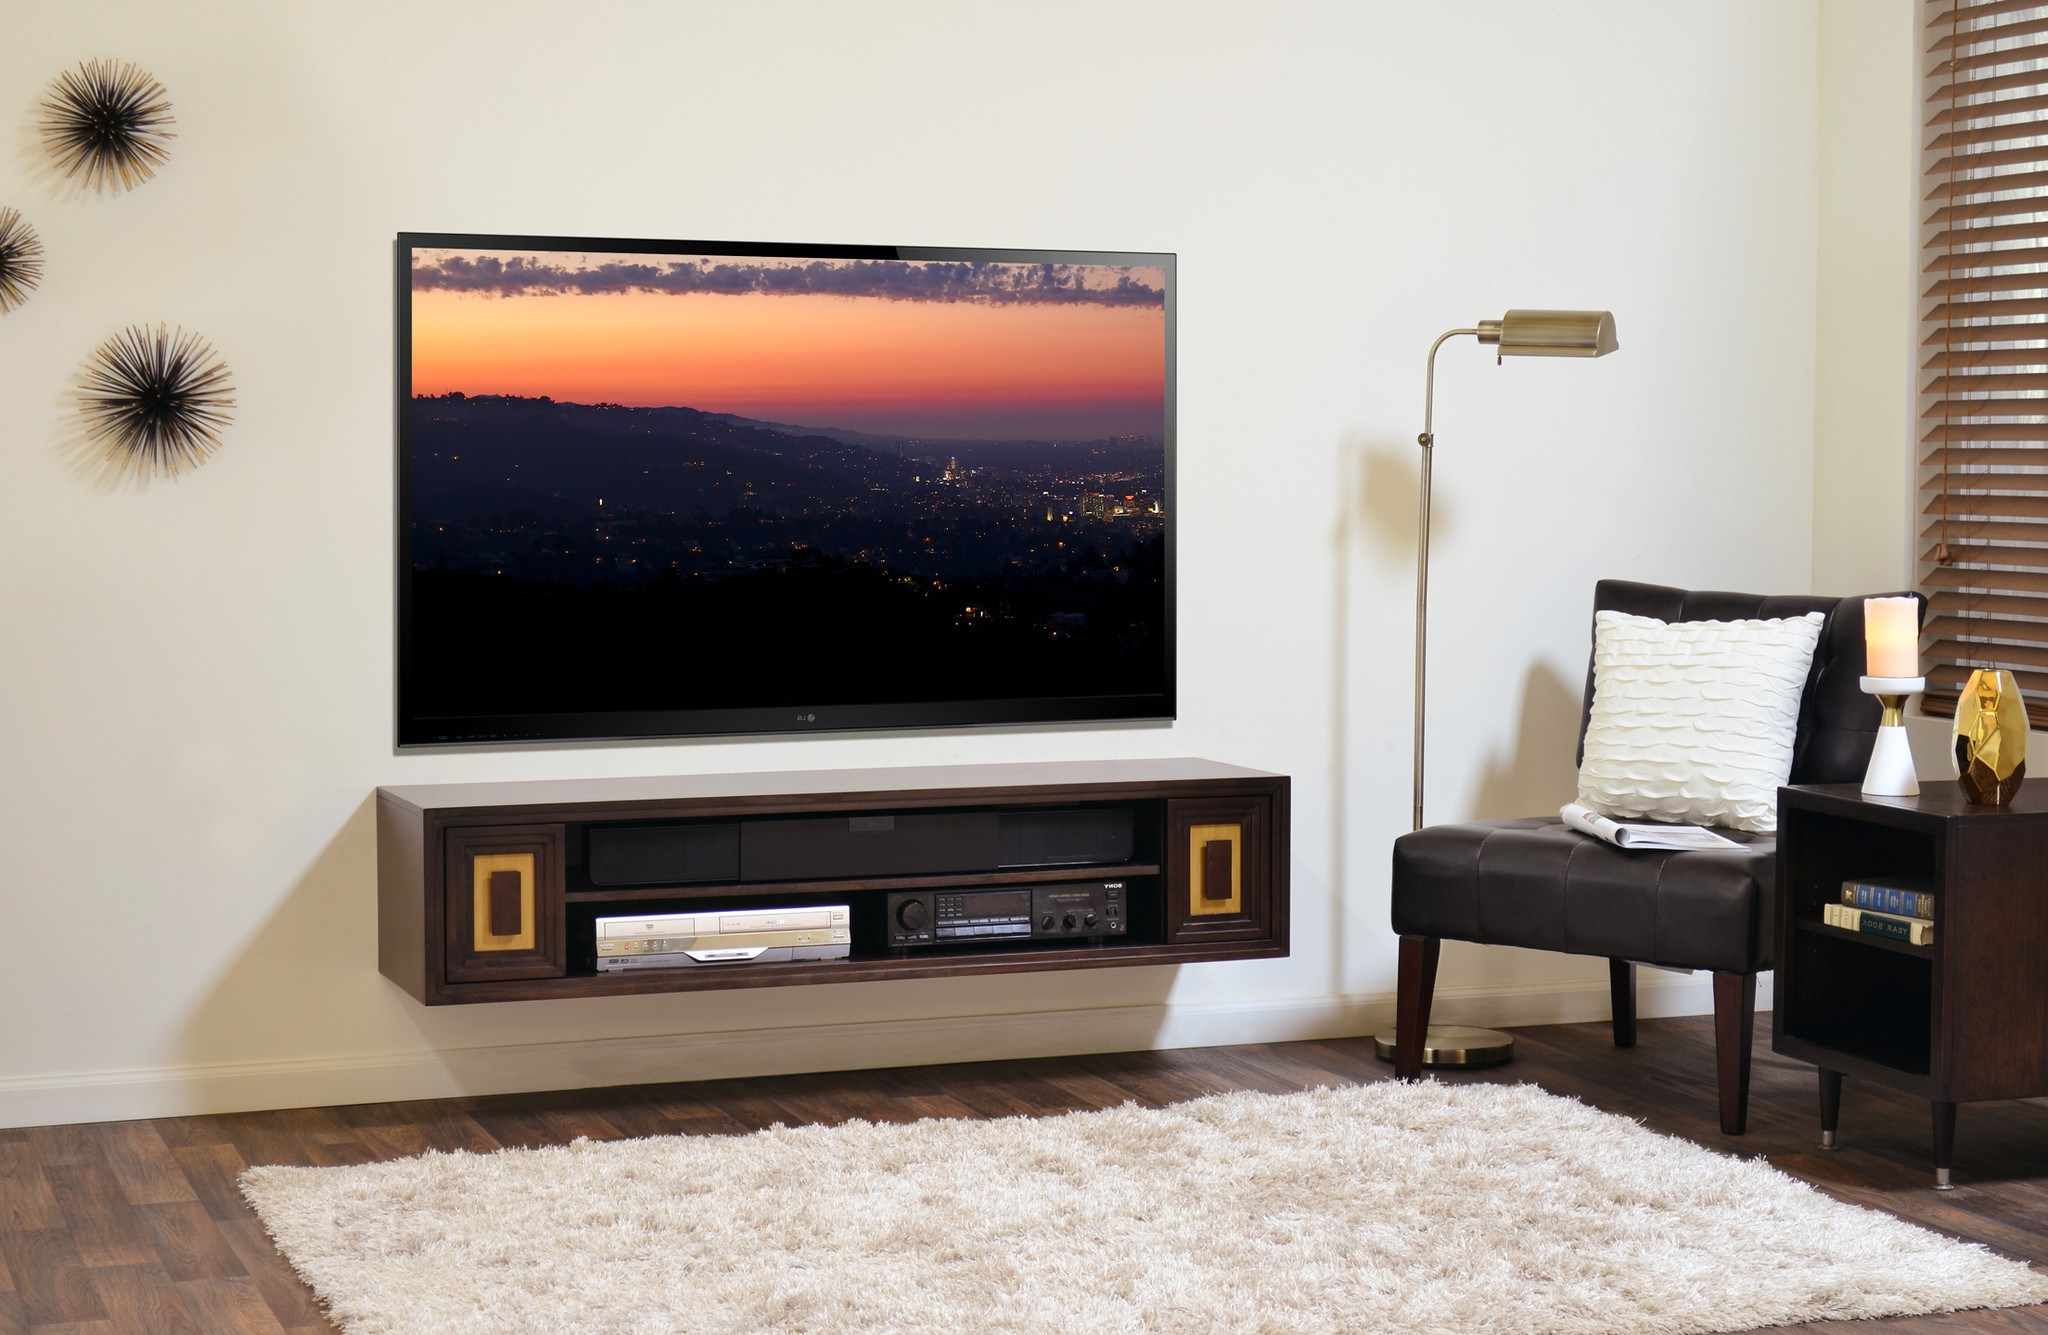 Unusual Shelves Dvd Player Sound System Flat Tv A Single Black Chair Regarding Fashionable Unusual Tv Cabinets (View 12 of 20)